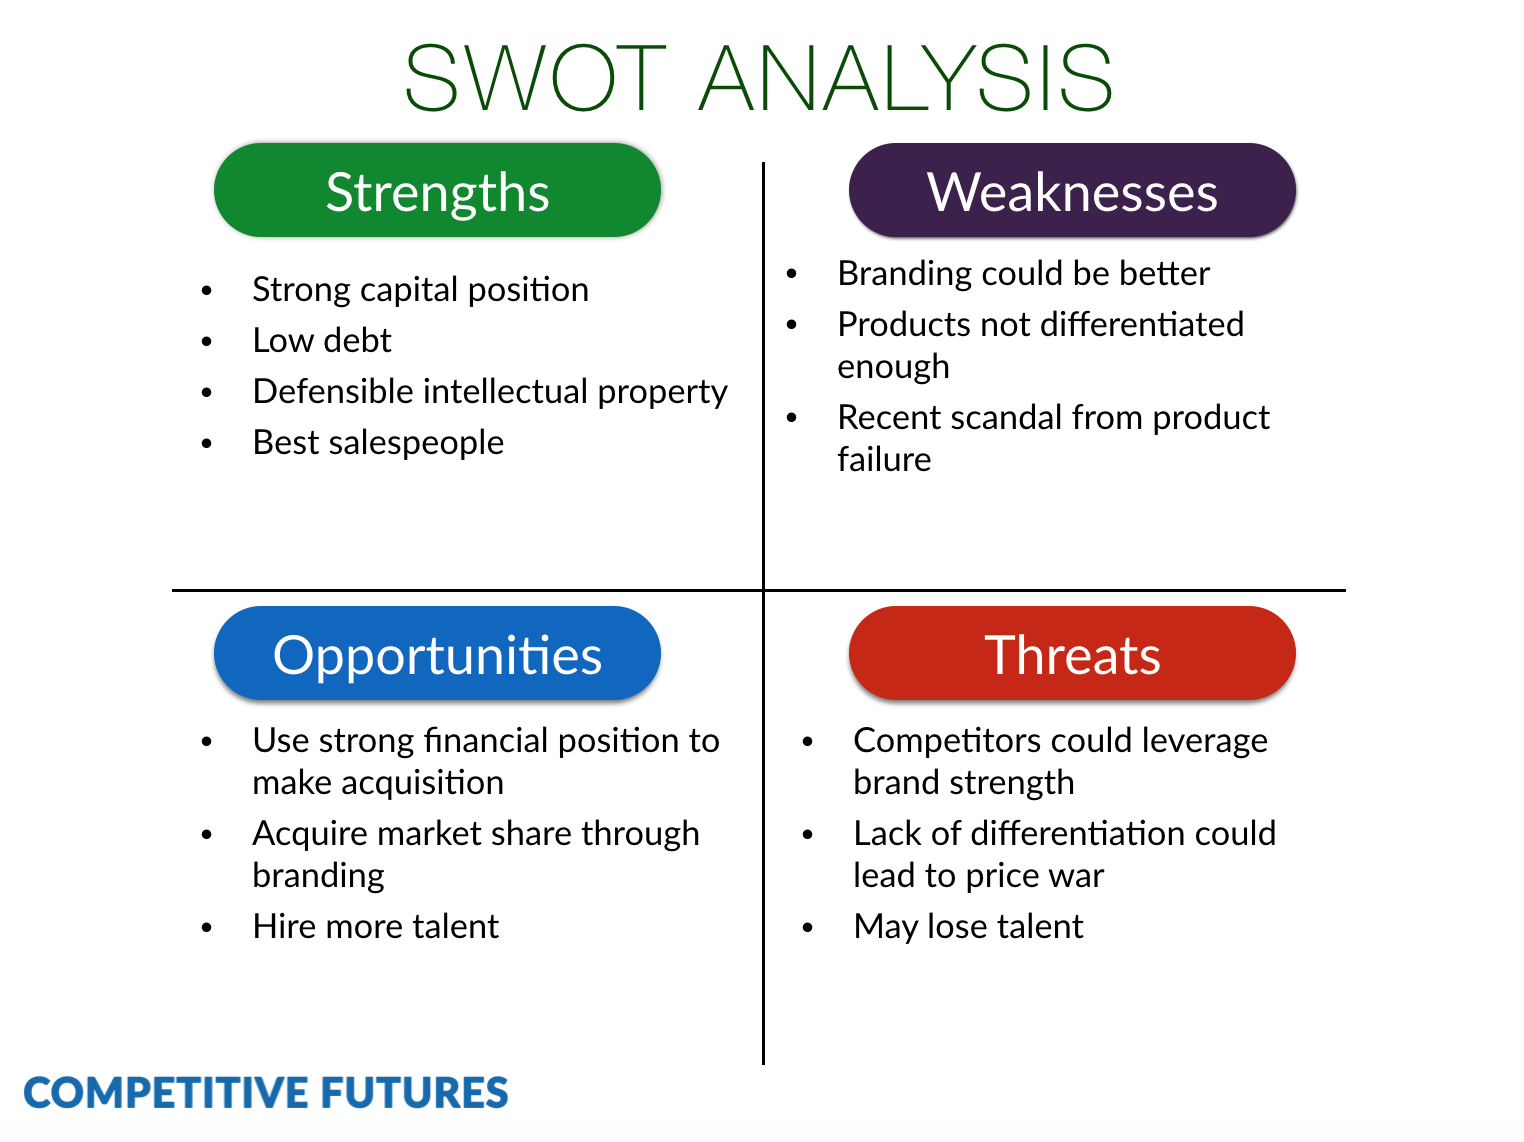 jjb sports swot analysis A business analysis of amer sports corp, a company involved in the manufacture and retail of sports equipment, apparel and footwear, is provided, focusing on its strengths, weaknesses, opportunities for improvement and threats to the company.